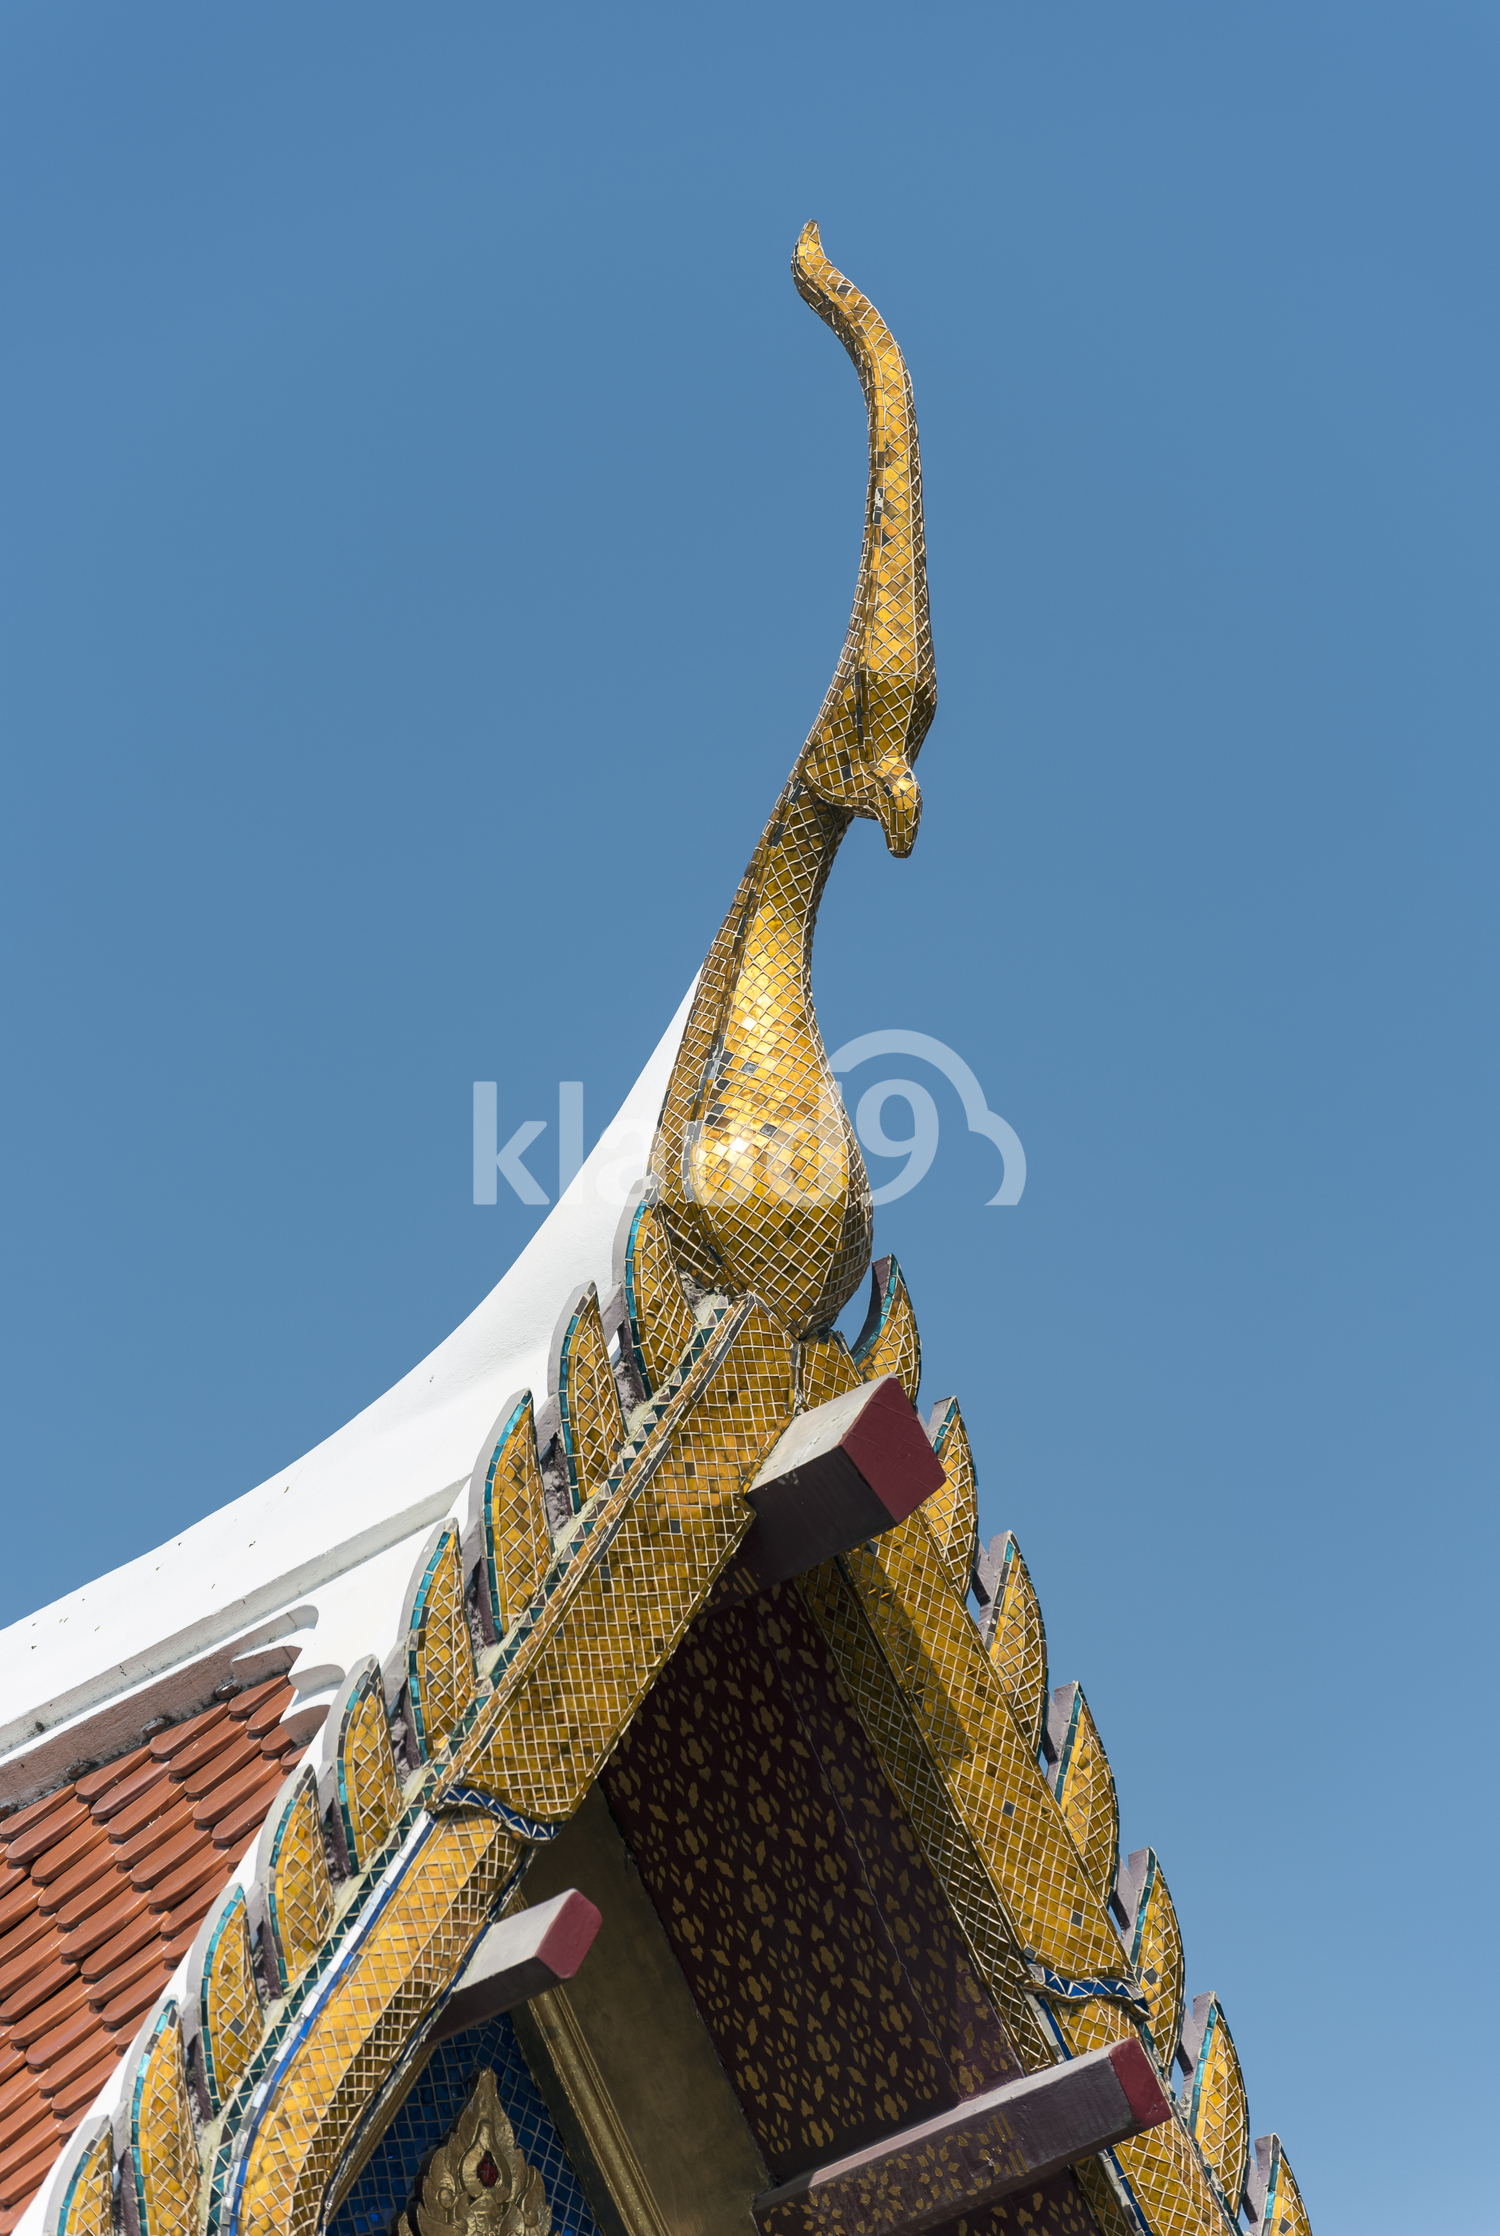 Roof of Temple of Emerald Buddha, Bangkok